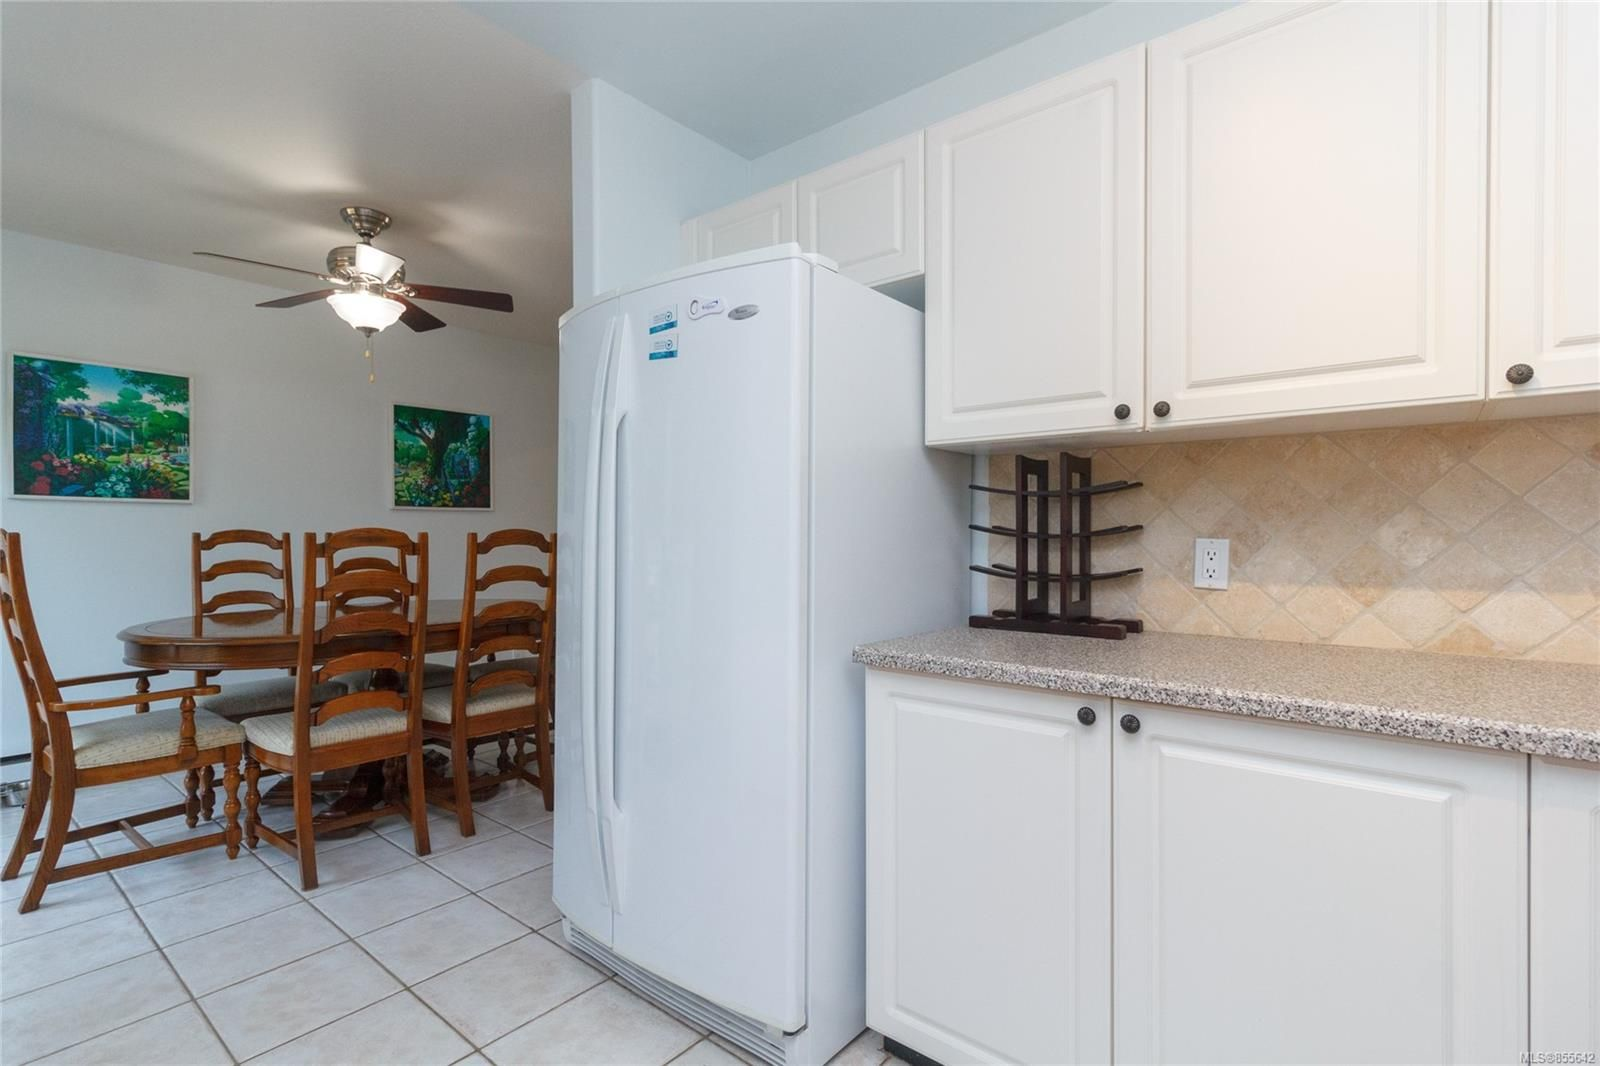 Photo 12: Photos: 52 14 Erskine Lane in : VR Hospital Row/Townhouse for sale (View Royal)  : MLS®# 855642